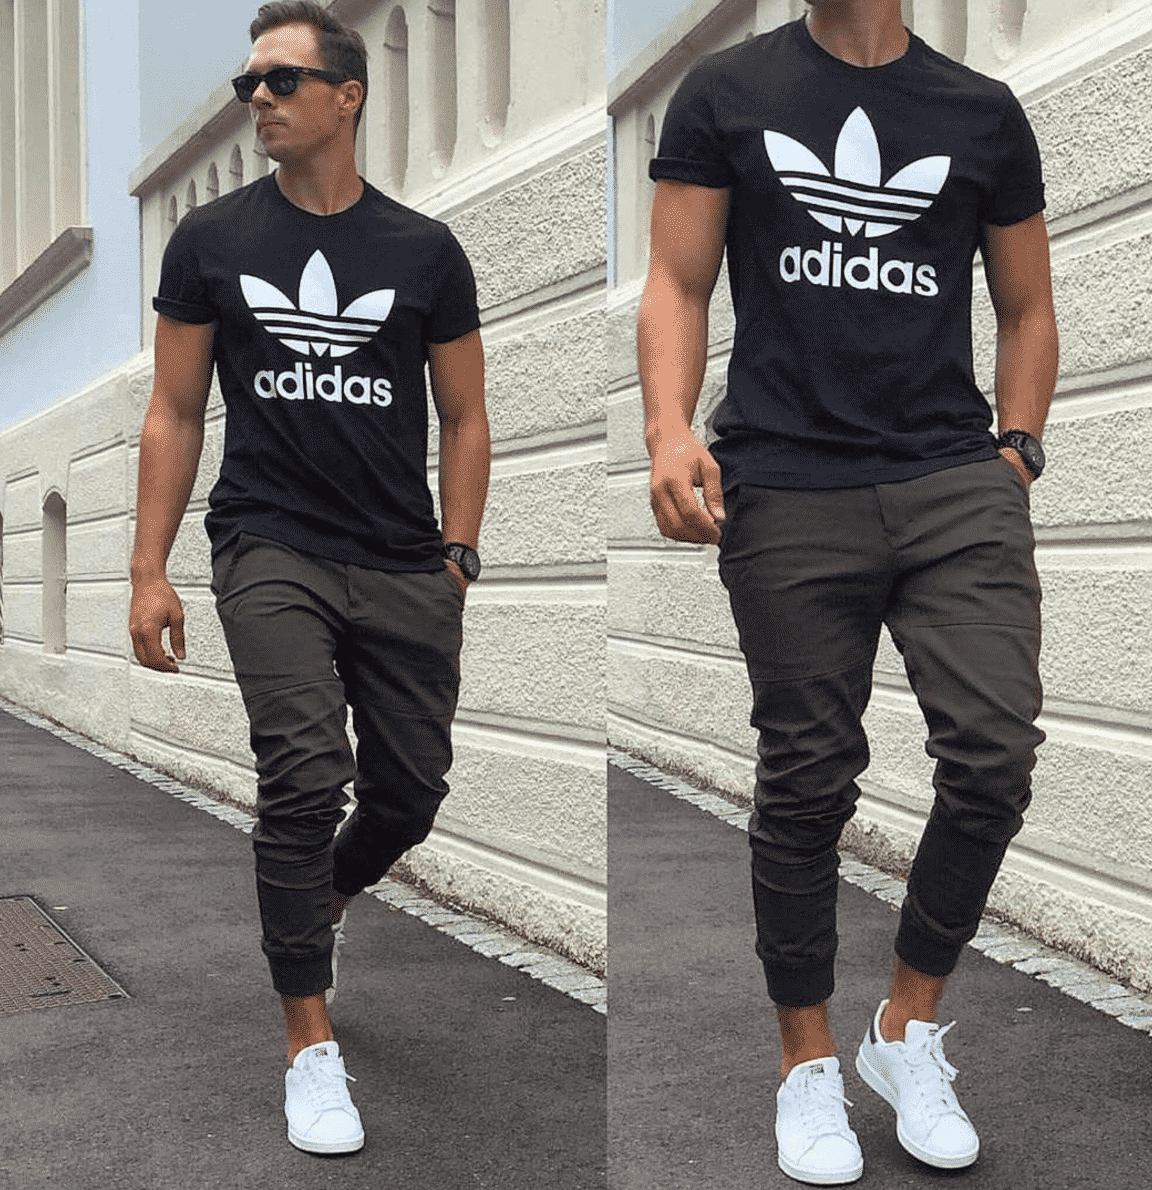 adidas-outfits-for-men 17 Most Popular Street Style Fashion Ideas for Men